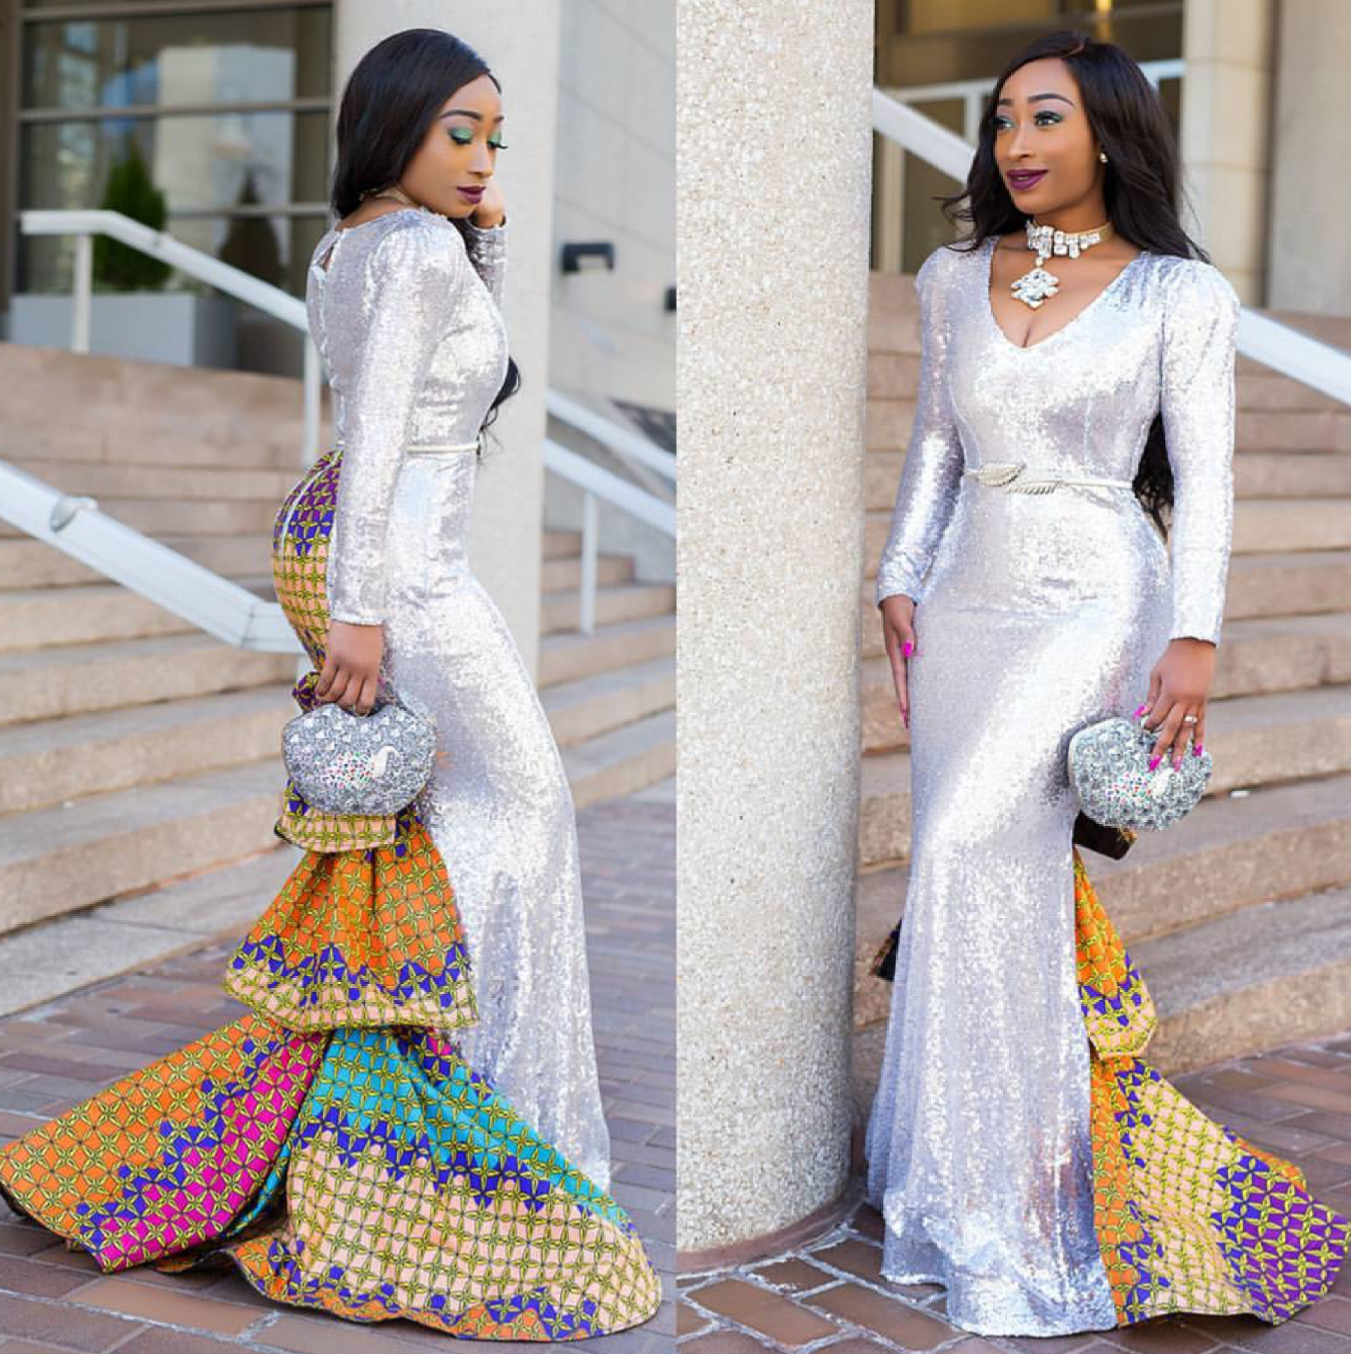 Fashion Forward and Glamorous Wedding Guests\' Outfits that Will ...